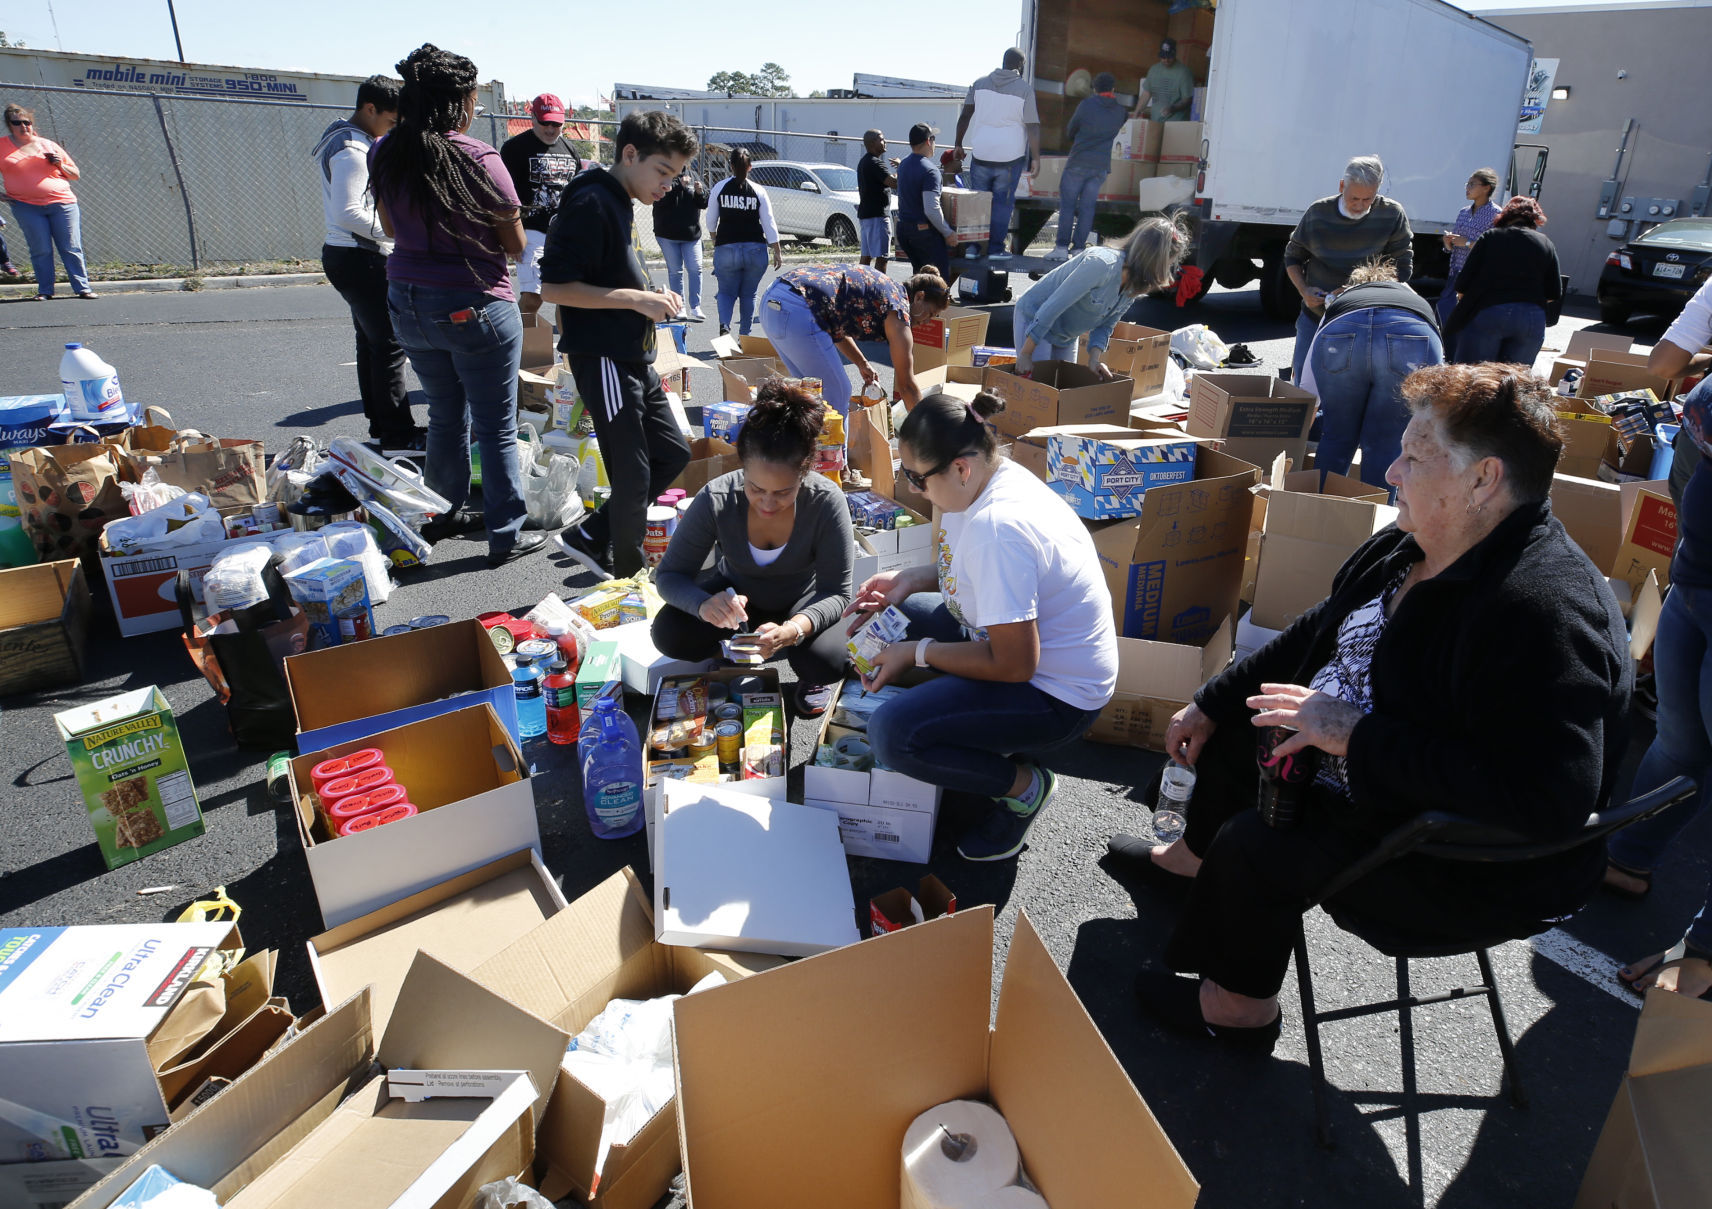 Locals continue gathering supplies for Puerto Rico as federal response questioned